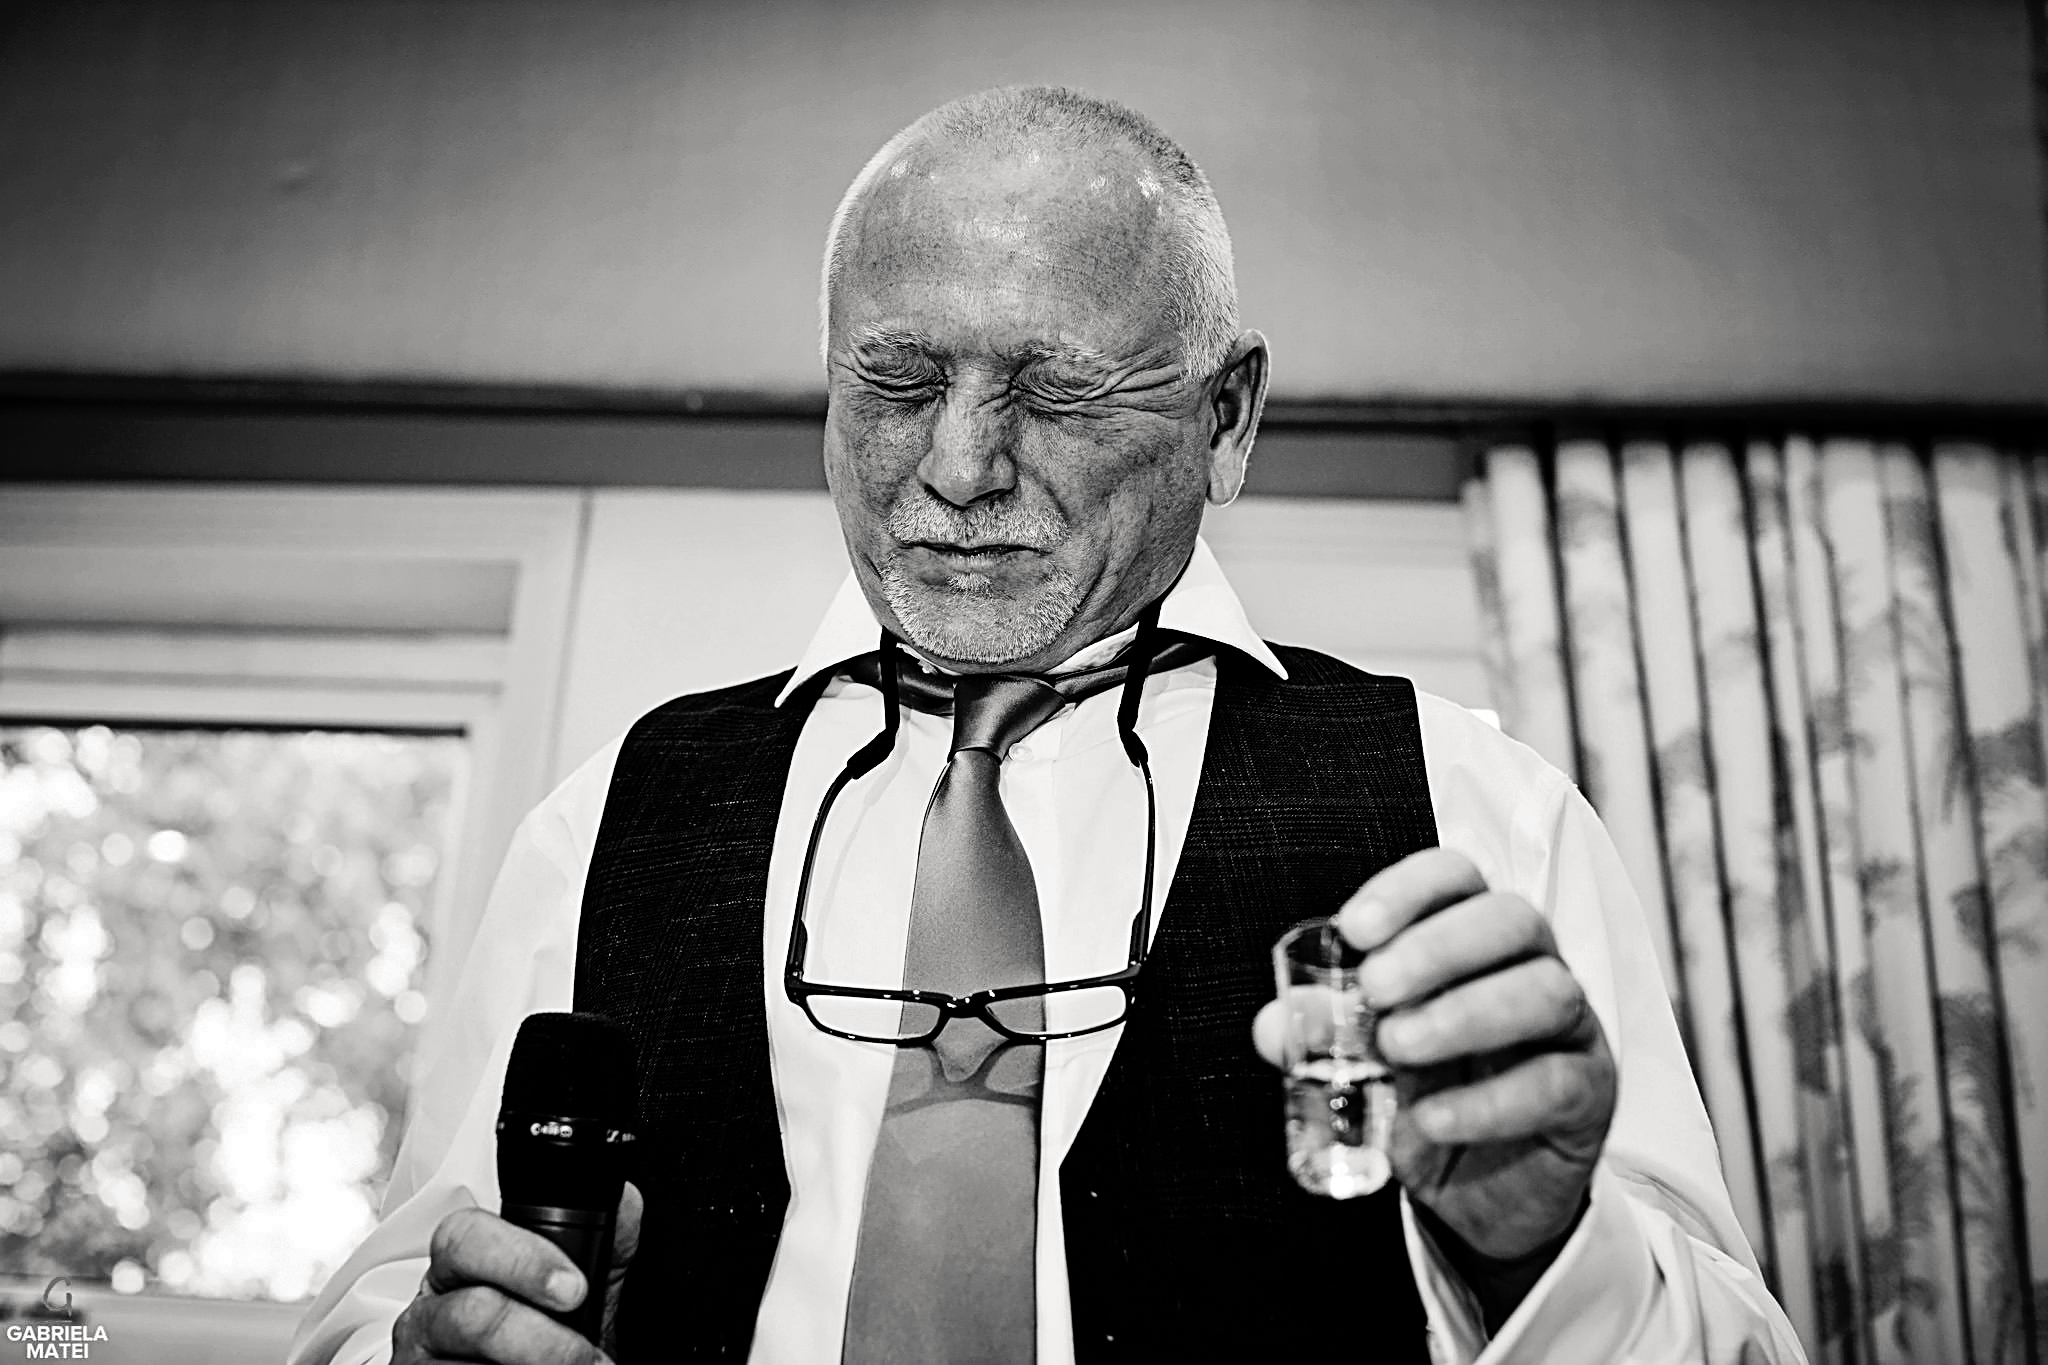 Father of the bride makes a grimasse after doing a shot during wedding reception